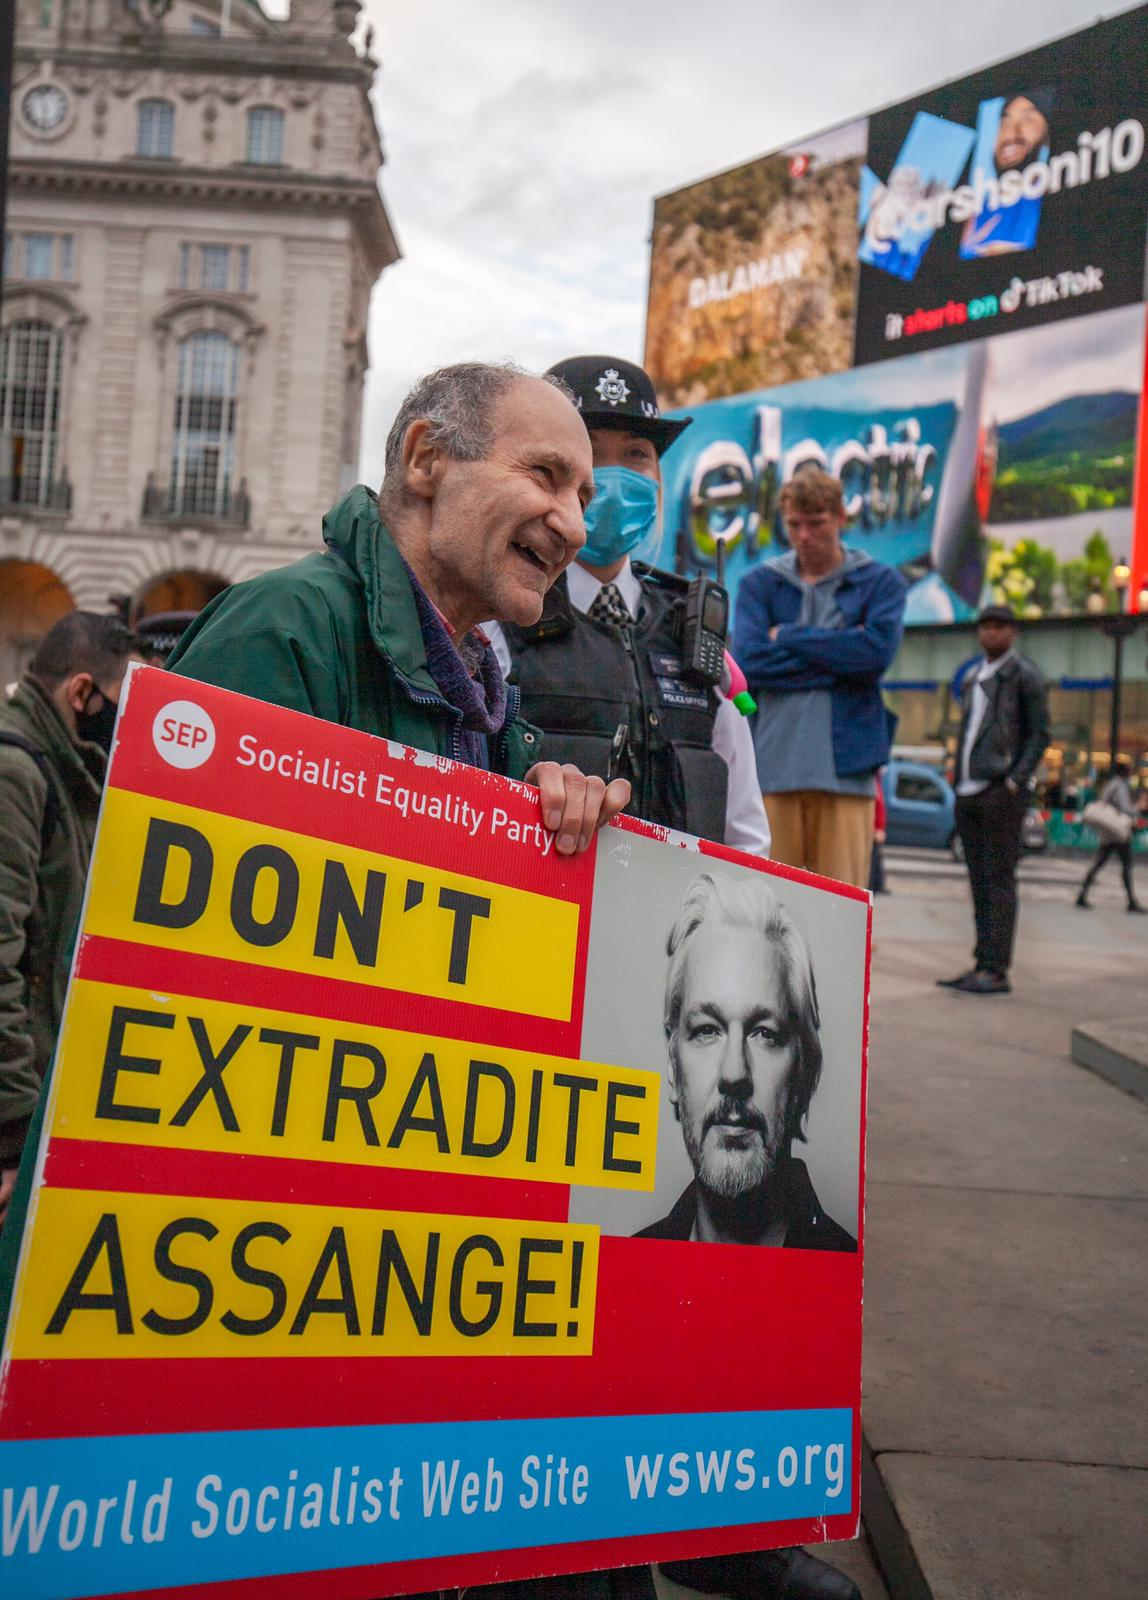 protest_photos:peter-before-arrest-piccadilly-circus-london-3oct20.jpg